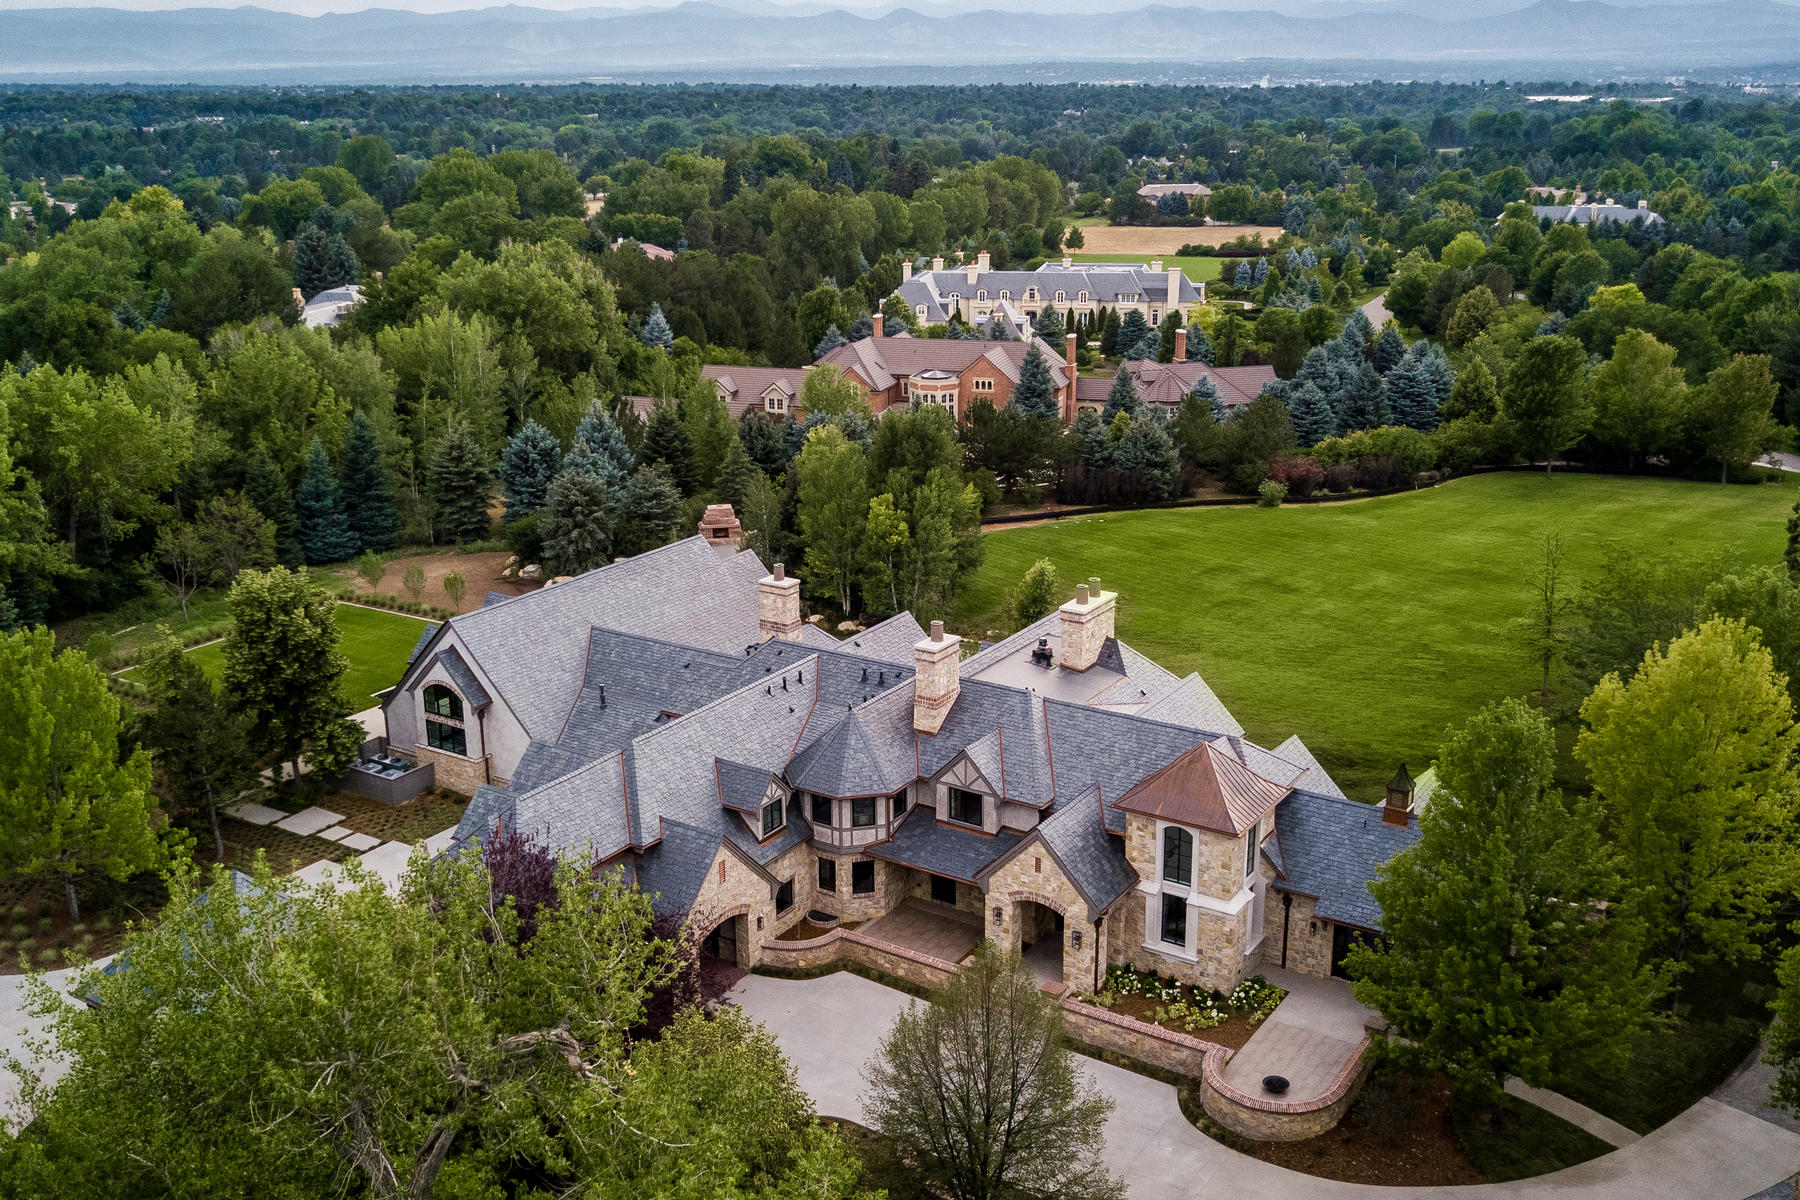 Casa Unifamiliar por un Venta en A breathtaking Colorado Masterpiece on 5 acres of lushly landscaped grounds! 10 Cherry Hills Park Dr Cherry Hills Village, Colorado 80113 Estados Unidos